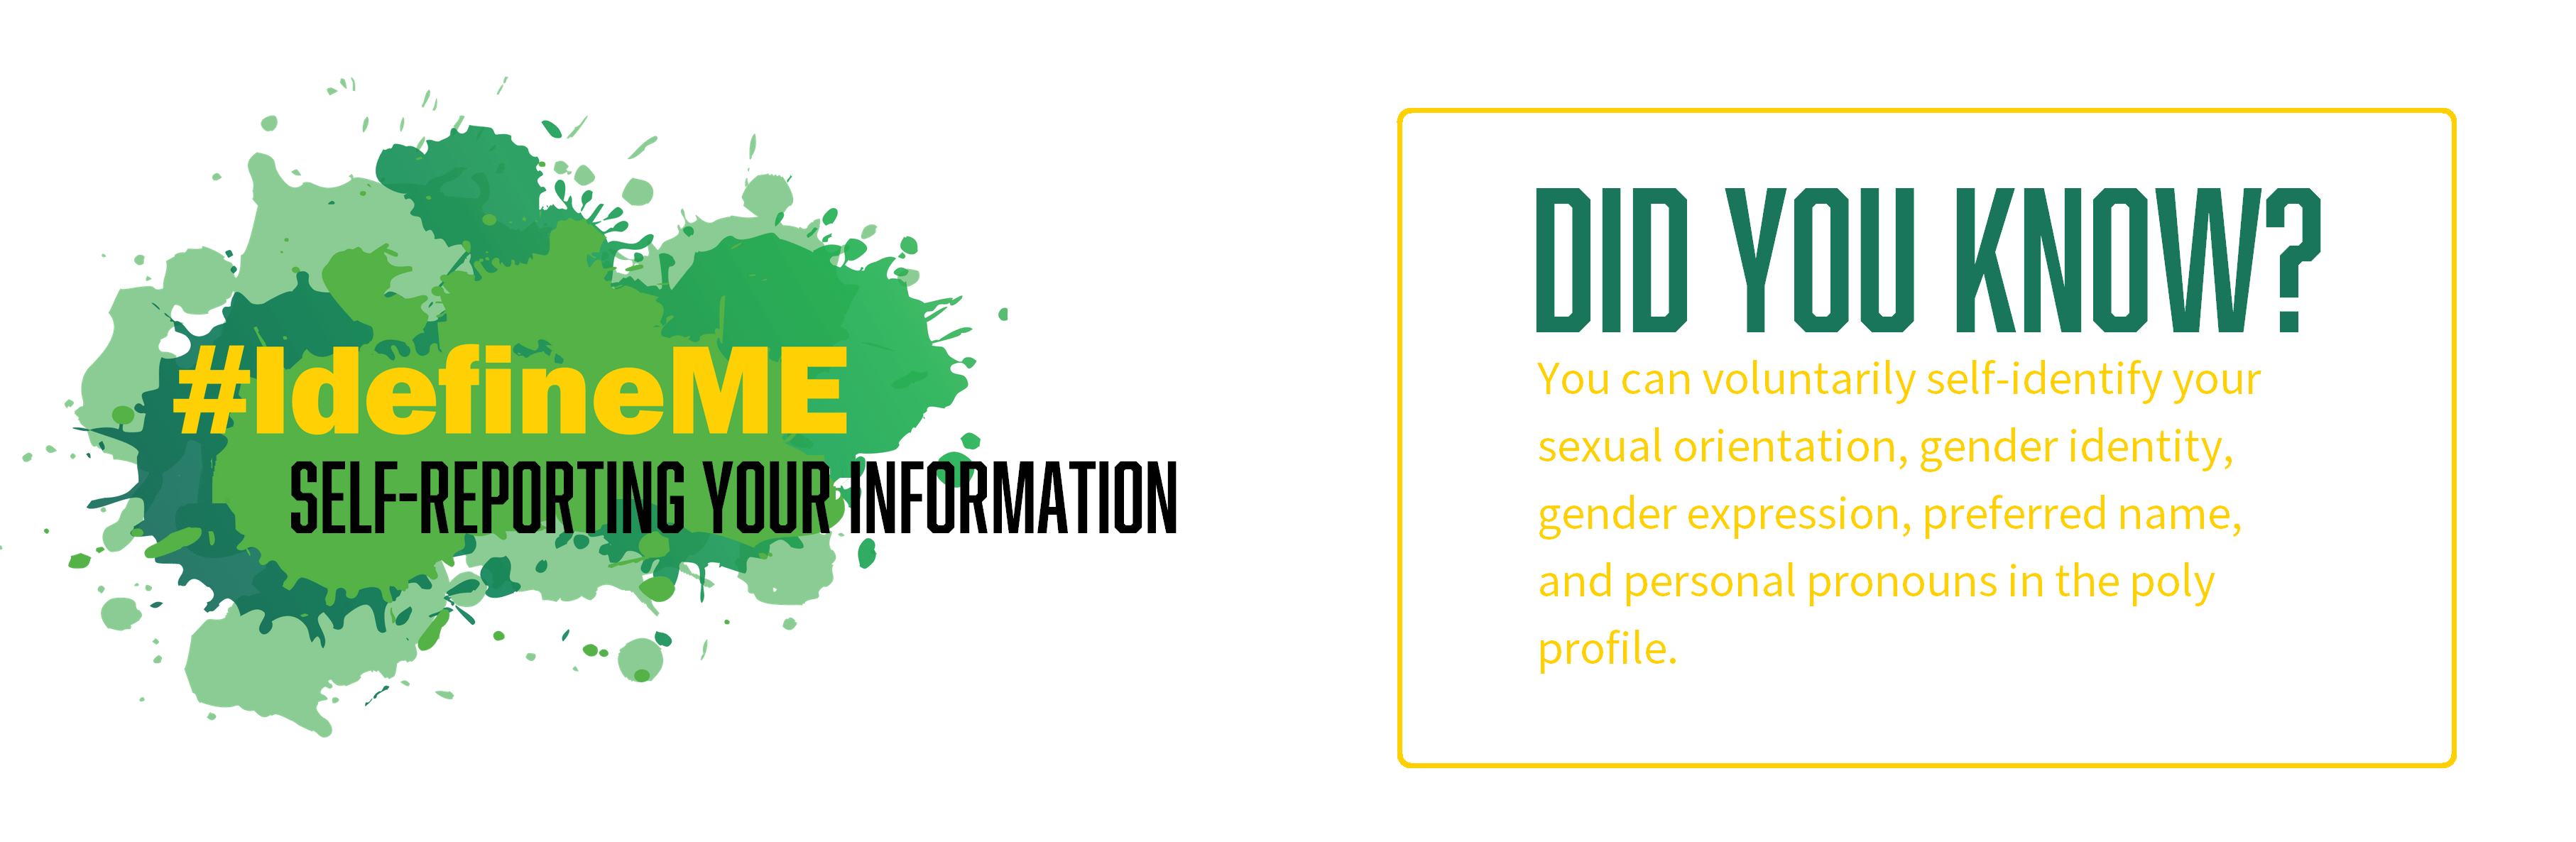 #IDefineME - self-reporting your information